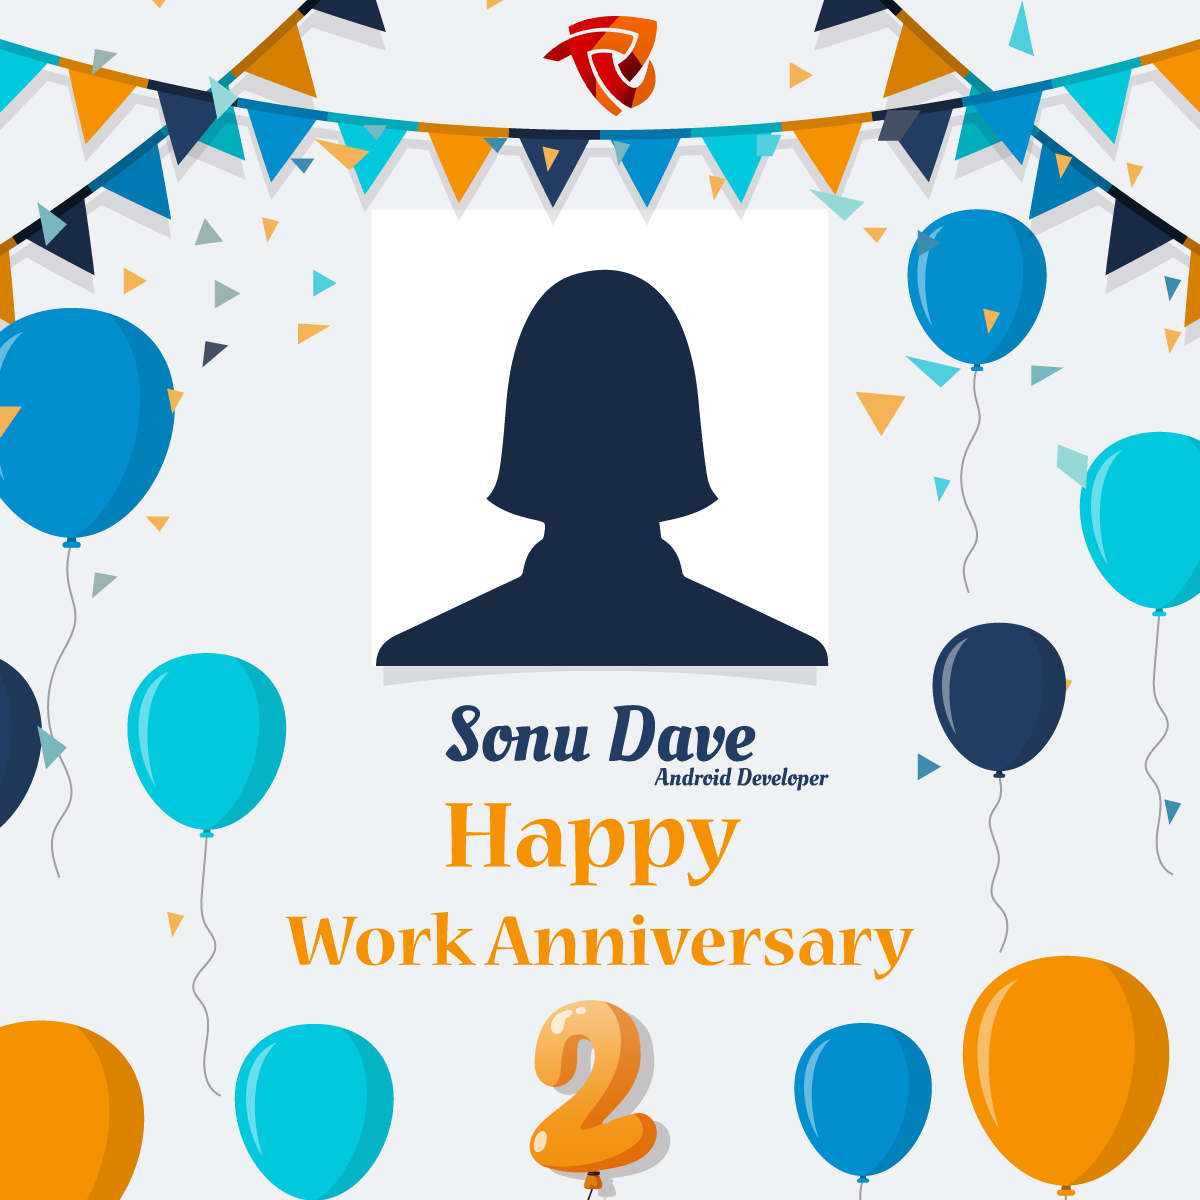 Happy 2nd Work Anniversary to Sonu Dave. Team Technobrave